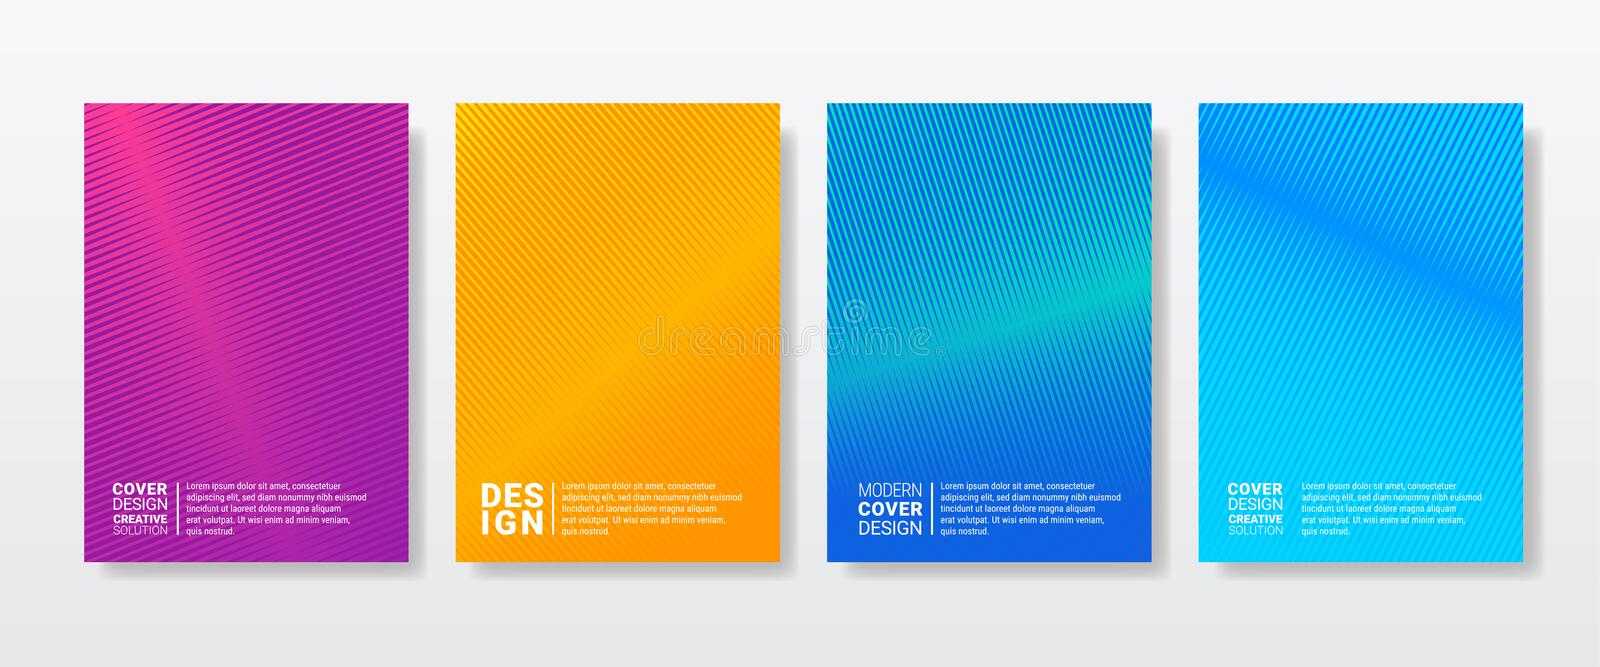 Color gradient abstract geometric pattern texture stock illustration